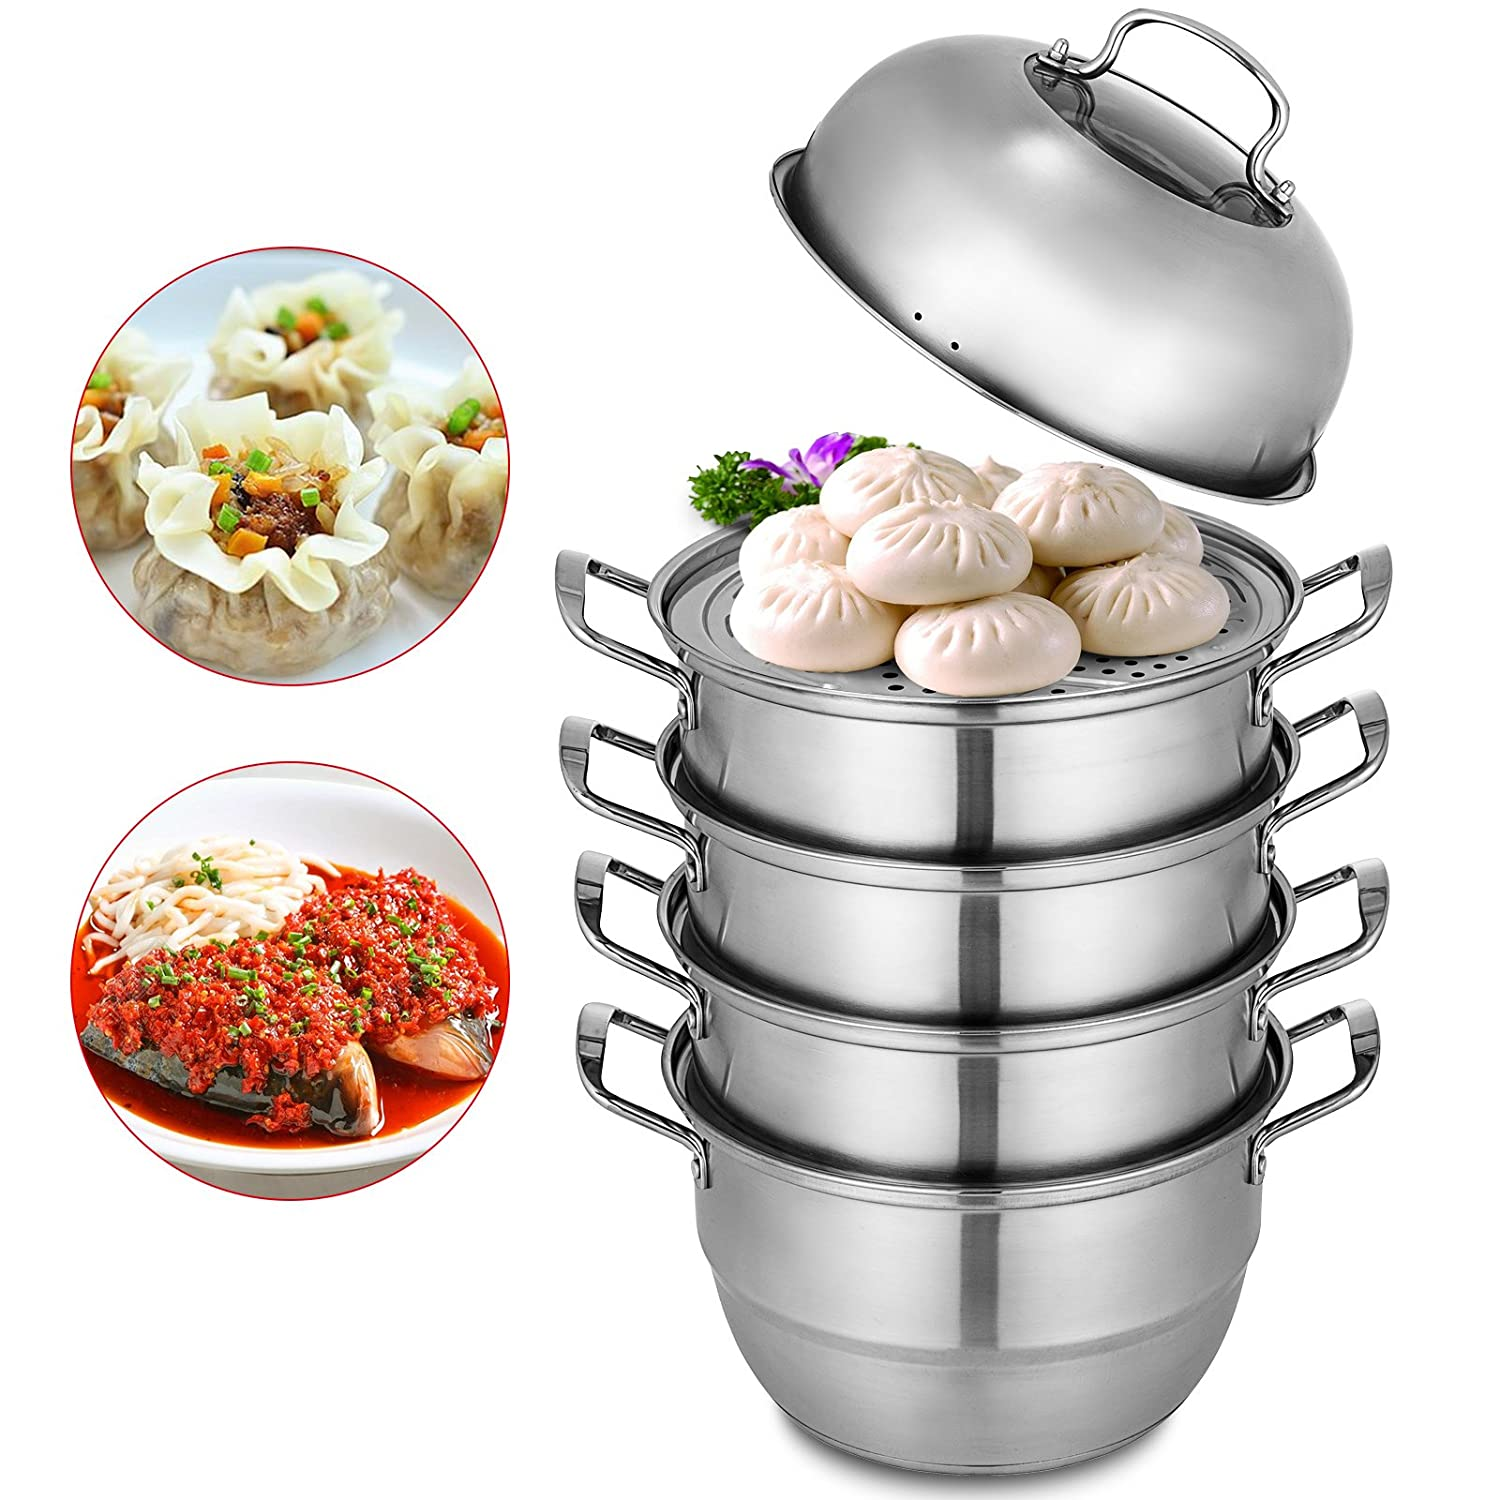 VEVOR Dumpling Steamer Stainless Steel 5 Titer for Cook Soup, Noodles, Fishes Work with Gas Electric Grill Stove Top Dia 30cm/11.8inch Pot